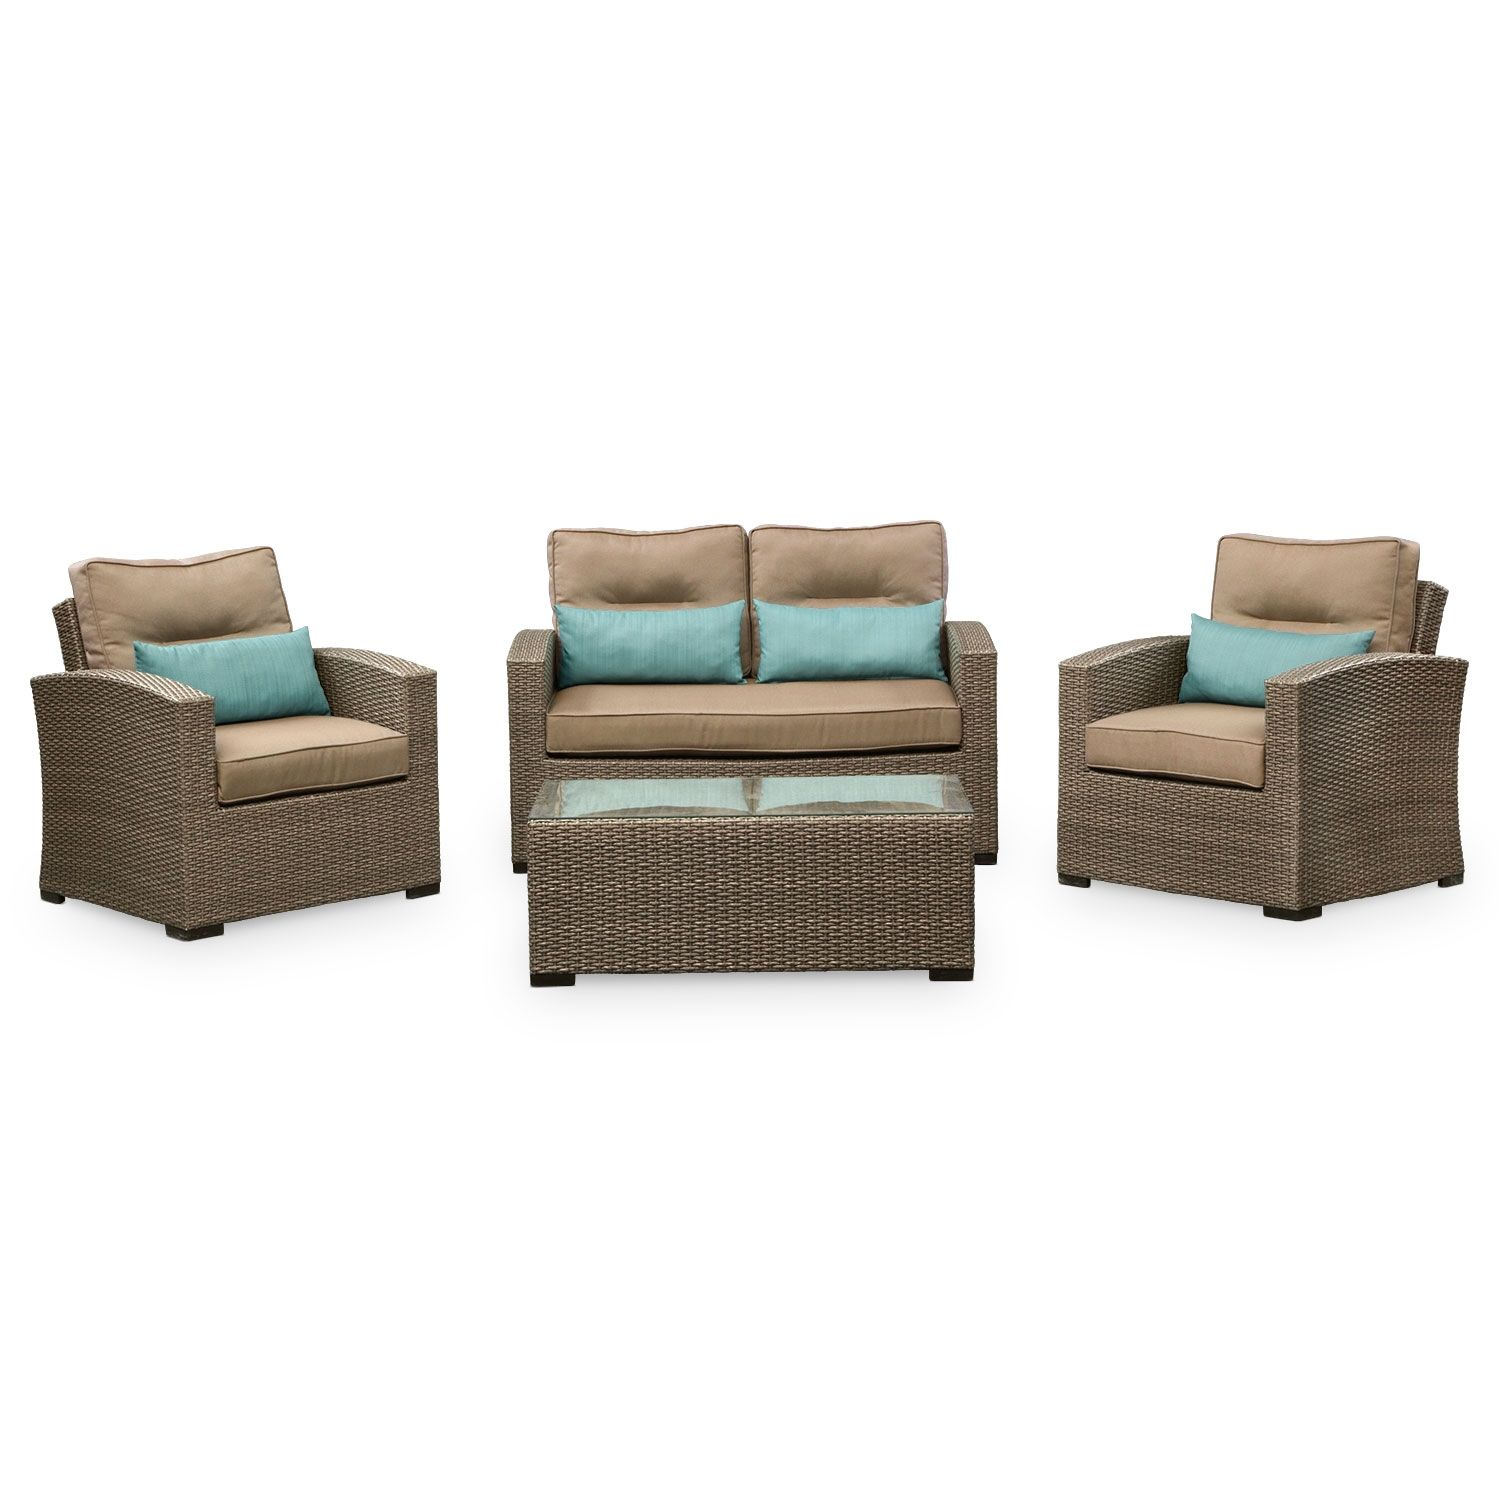 The Pinnacle Of Summer Style Patio Corona 4 Pc Outdoor Living Room Value City Furniture Value City Furniture Outdoor Living Room Outdoor Living